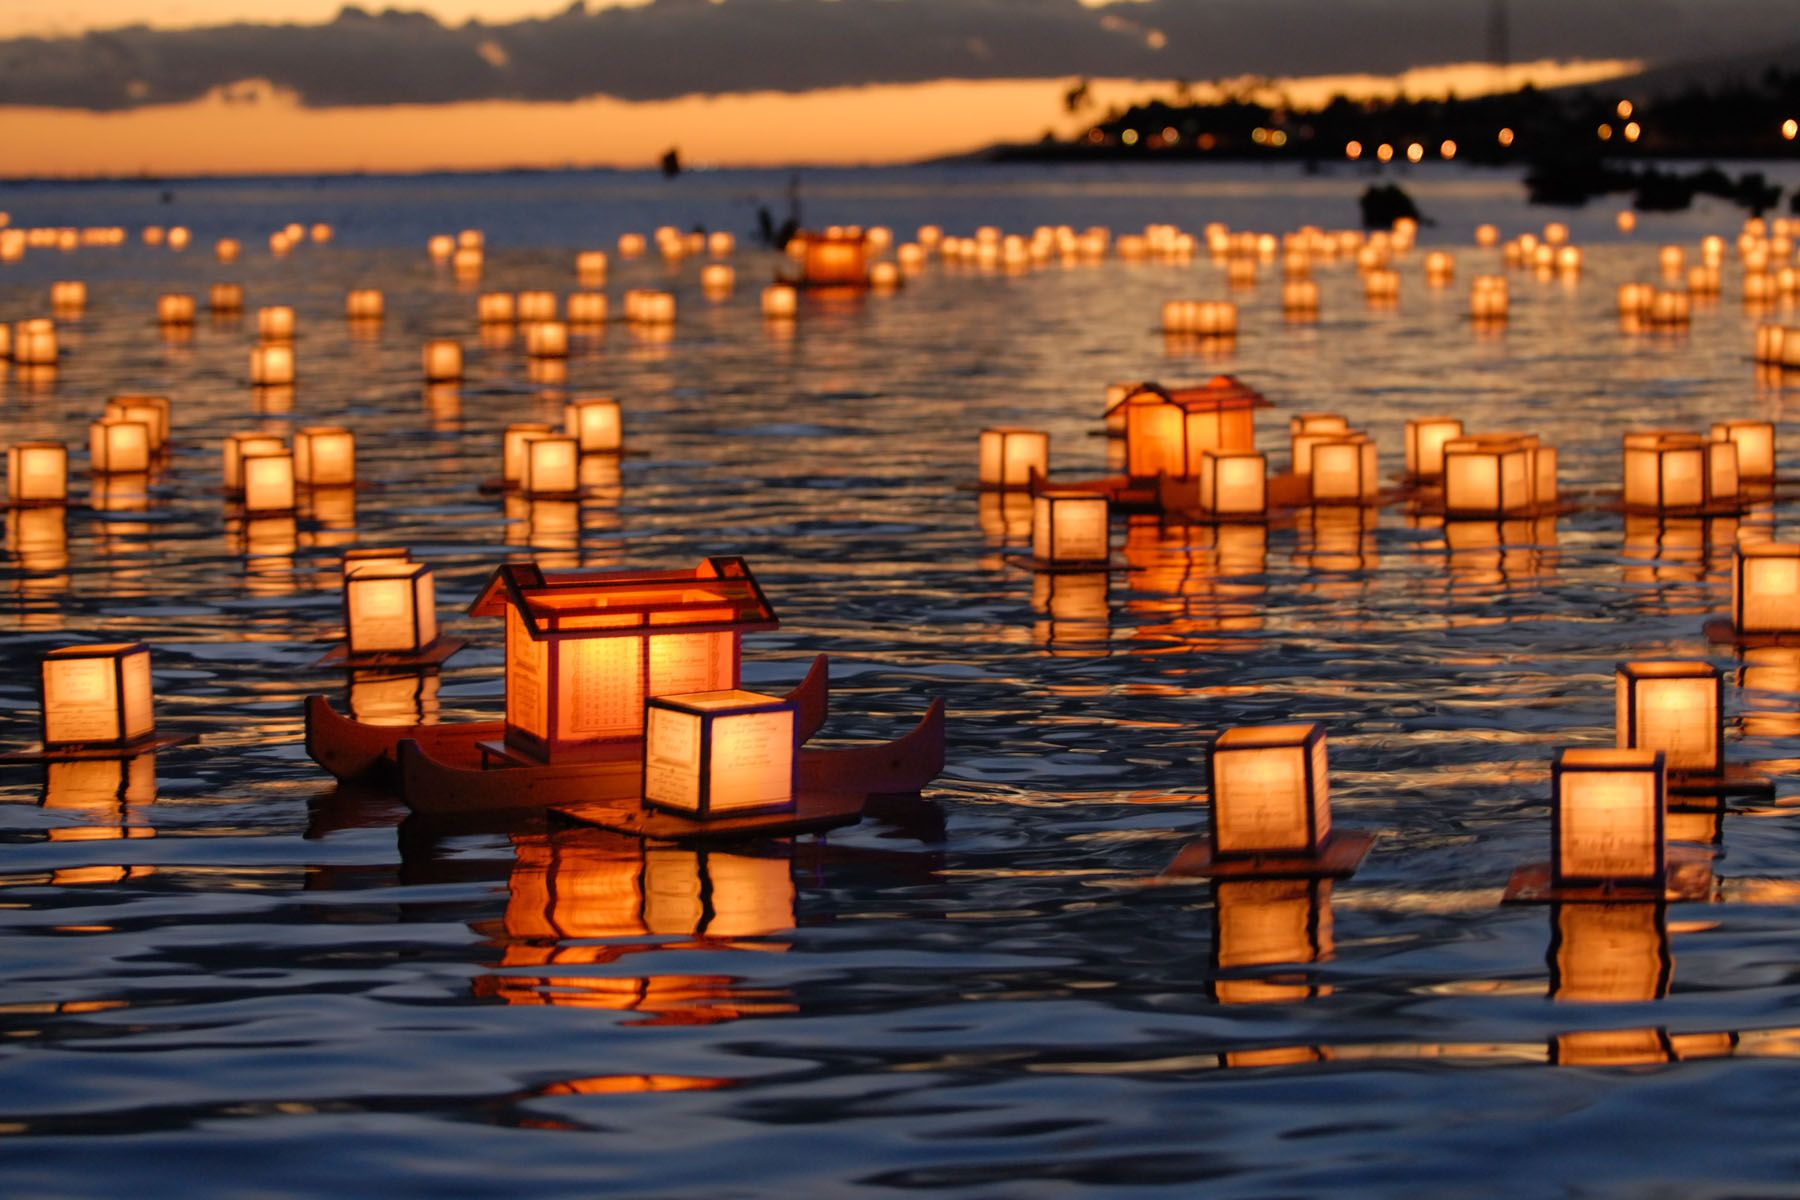 Sunset / Floating Lanterns In The Water | WALLPAPERS | Pinterest ... for Lantern Lights Wallpaper  183qdu